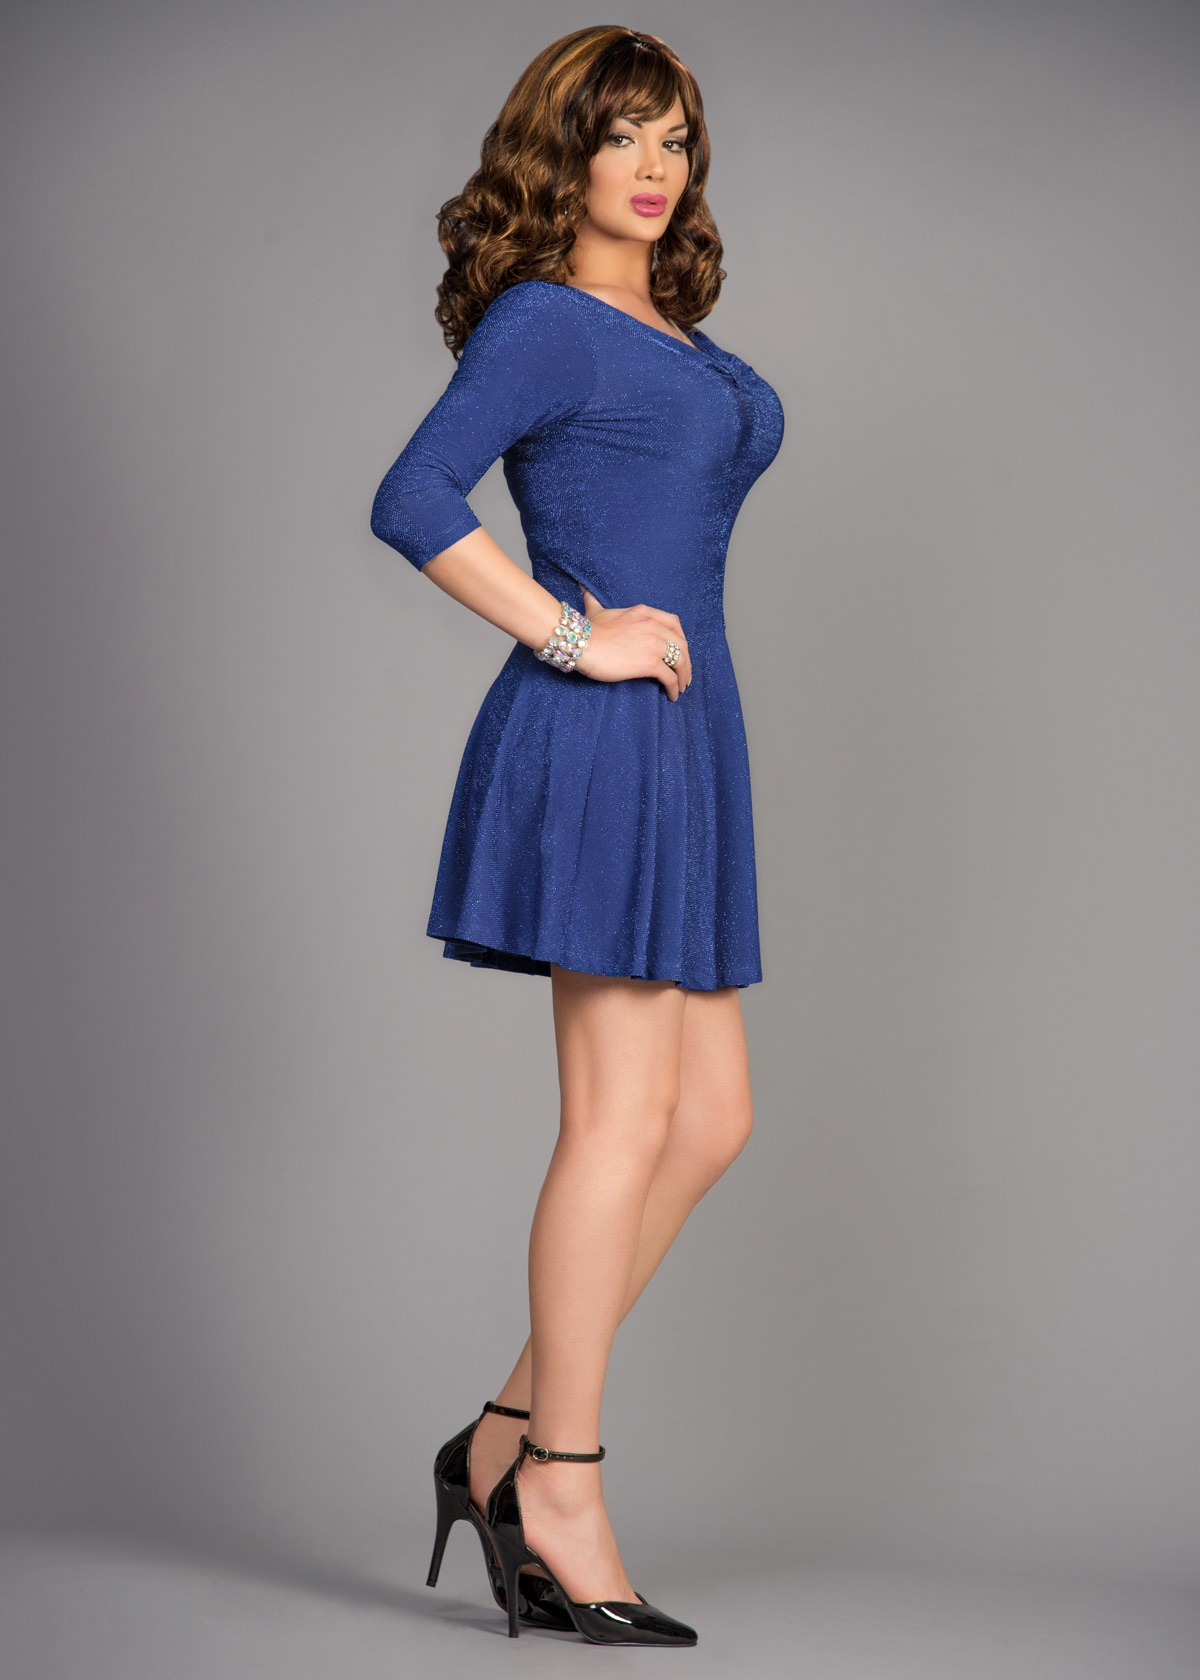 cdbfstore crossdressing clothes choose feminine dress in blue